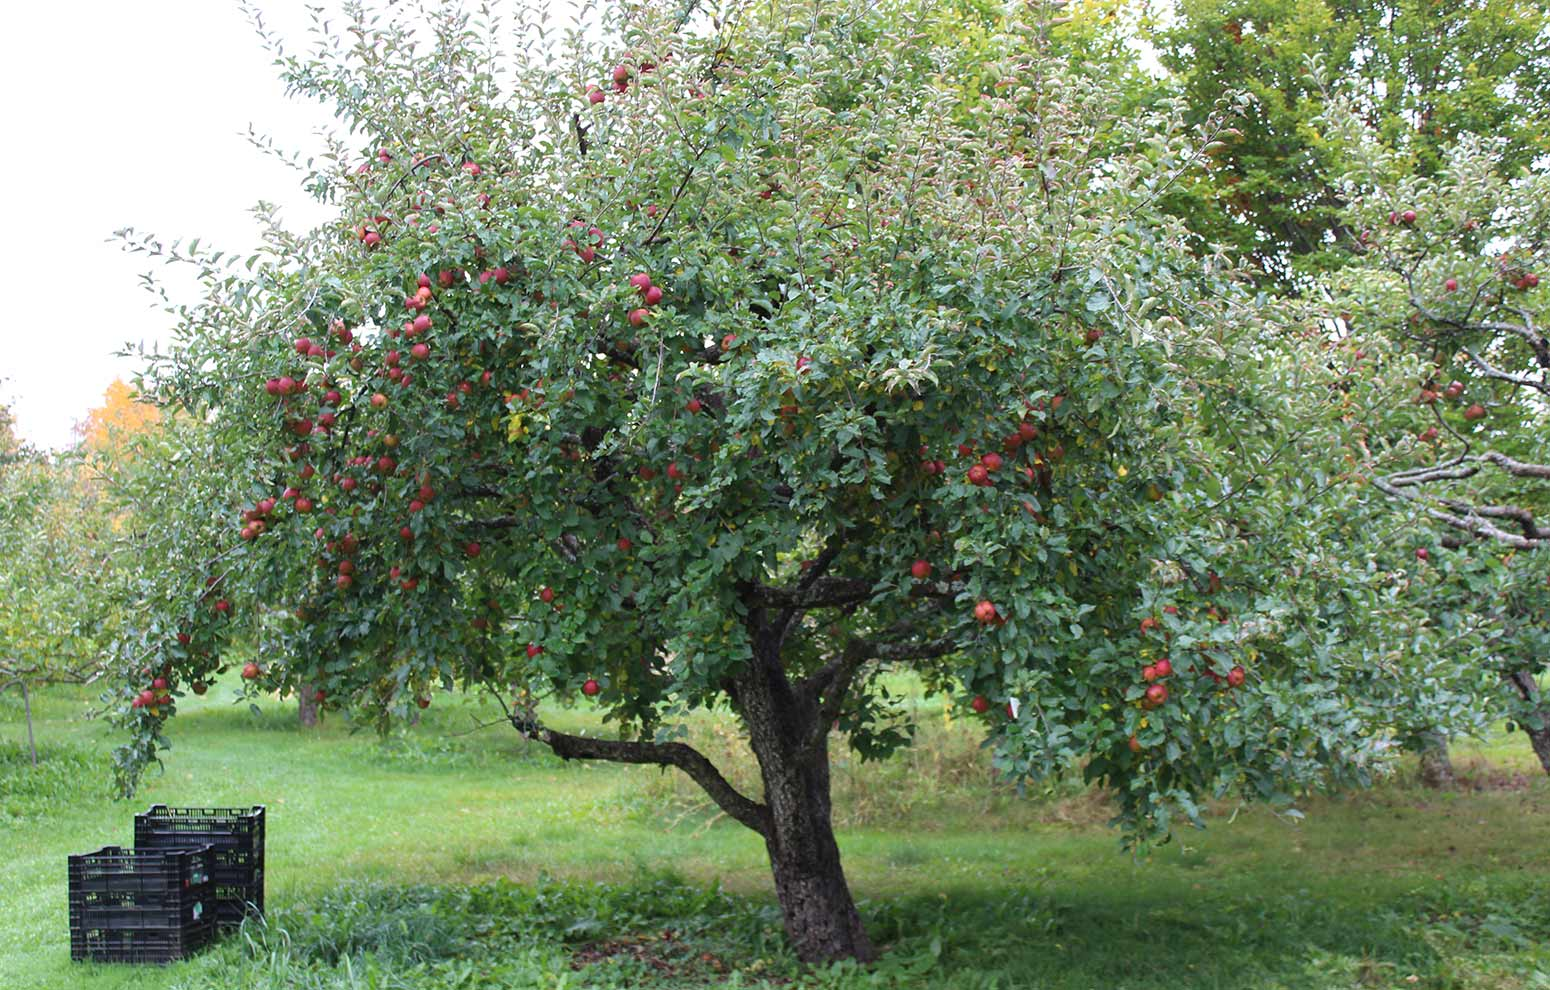 Baldwin apple tree full of ripe apples ready for harvest in Maine